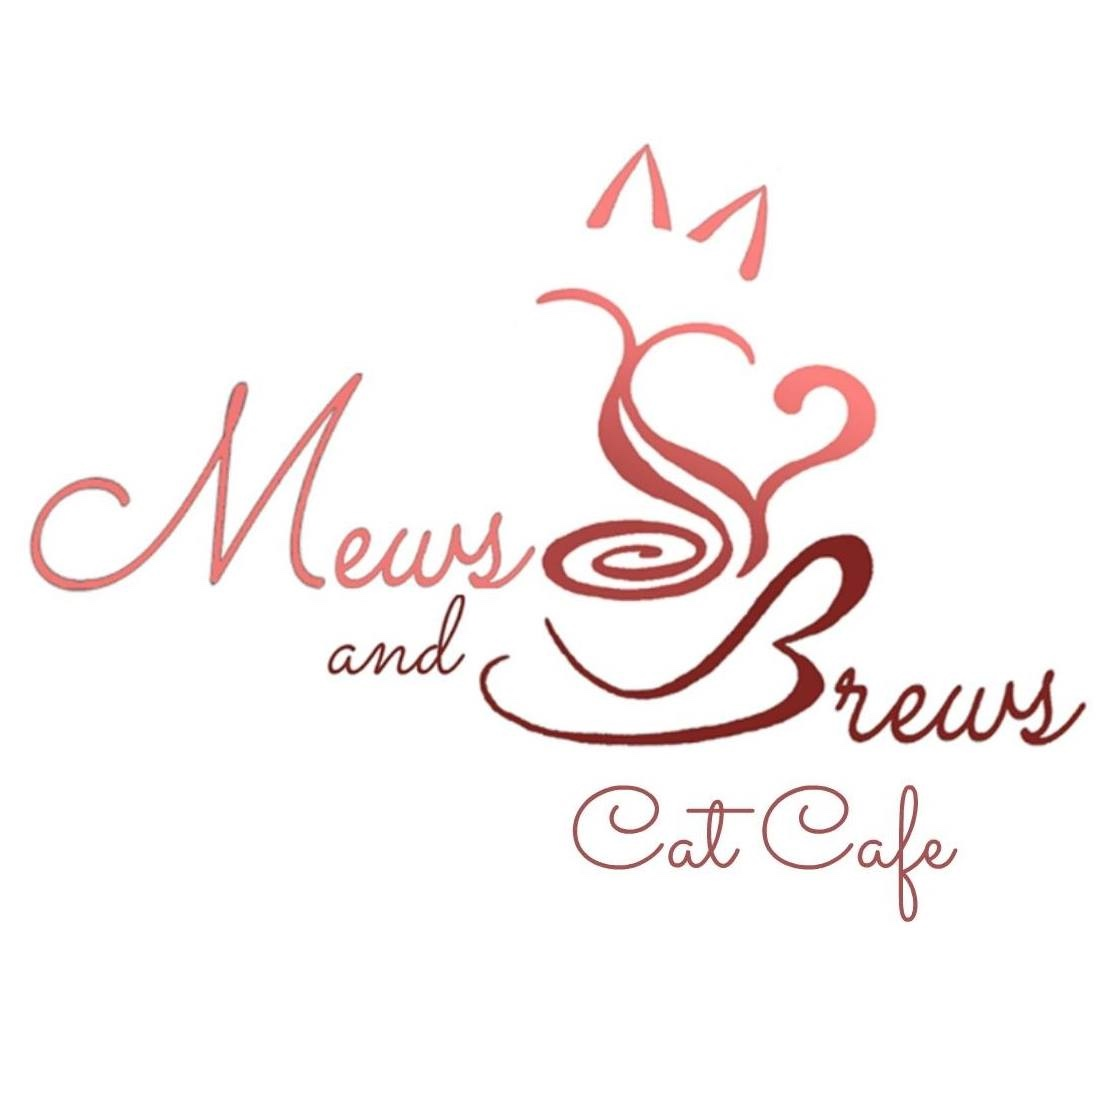 Mews and brews cat cafe logo